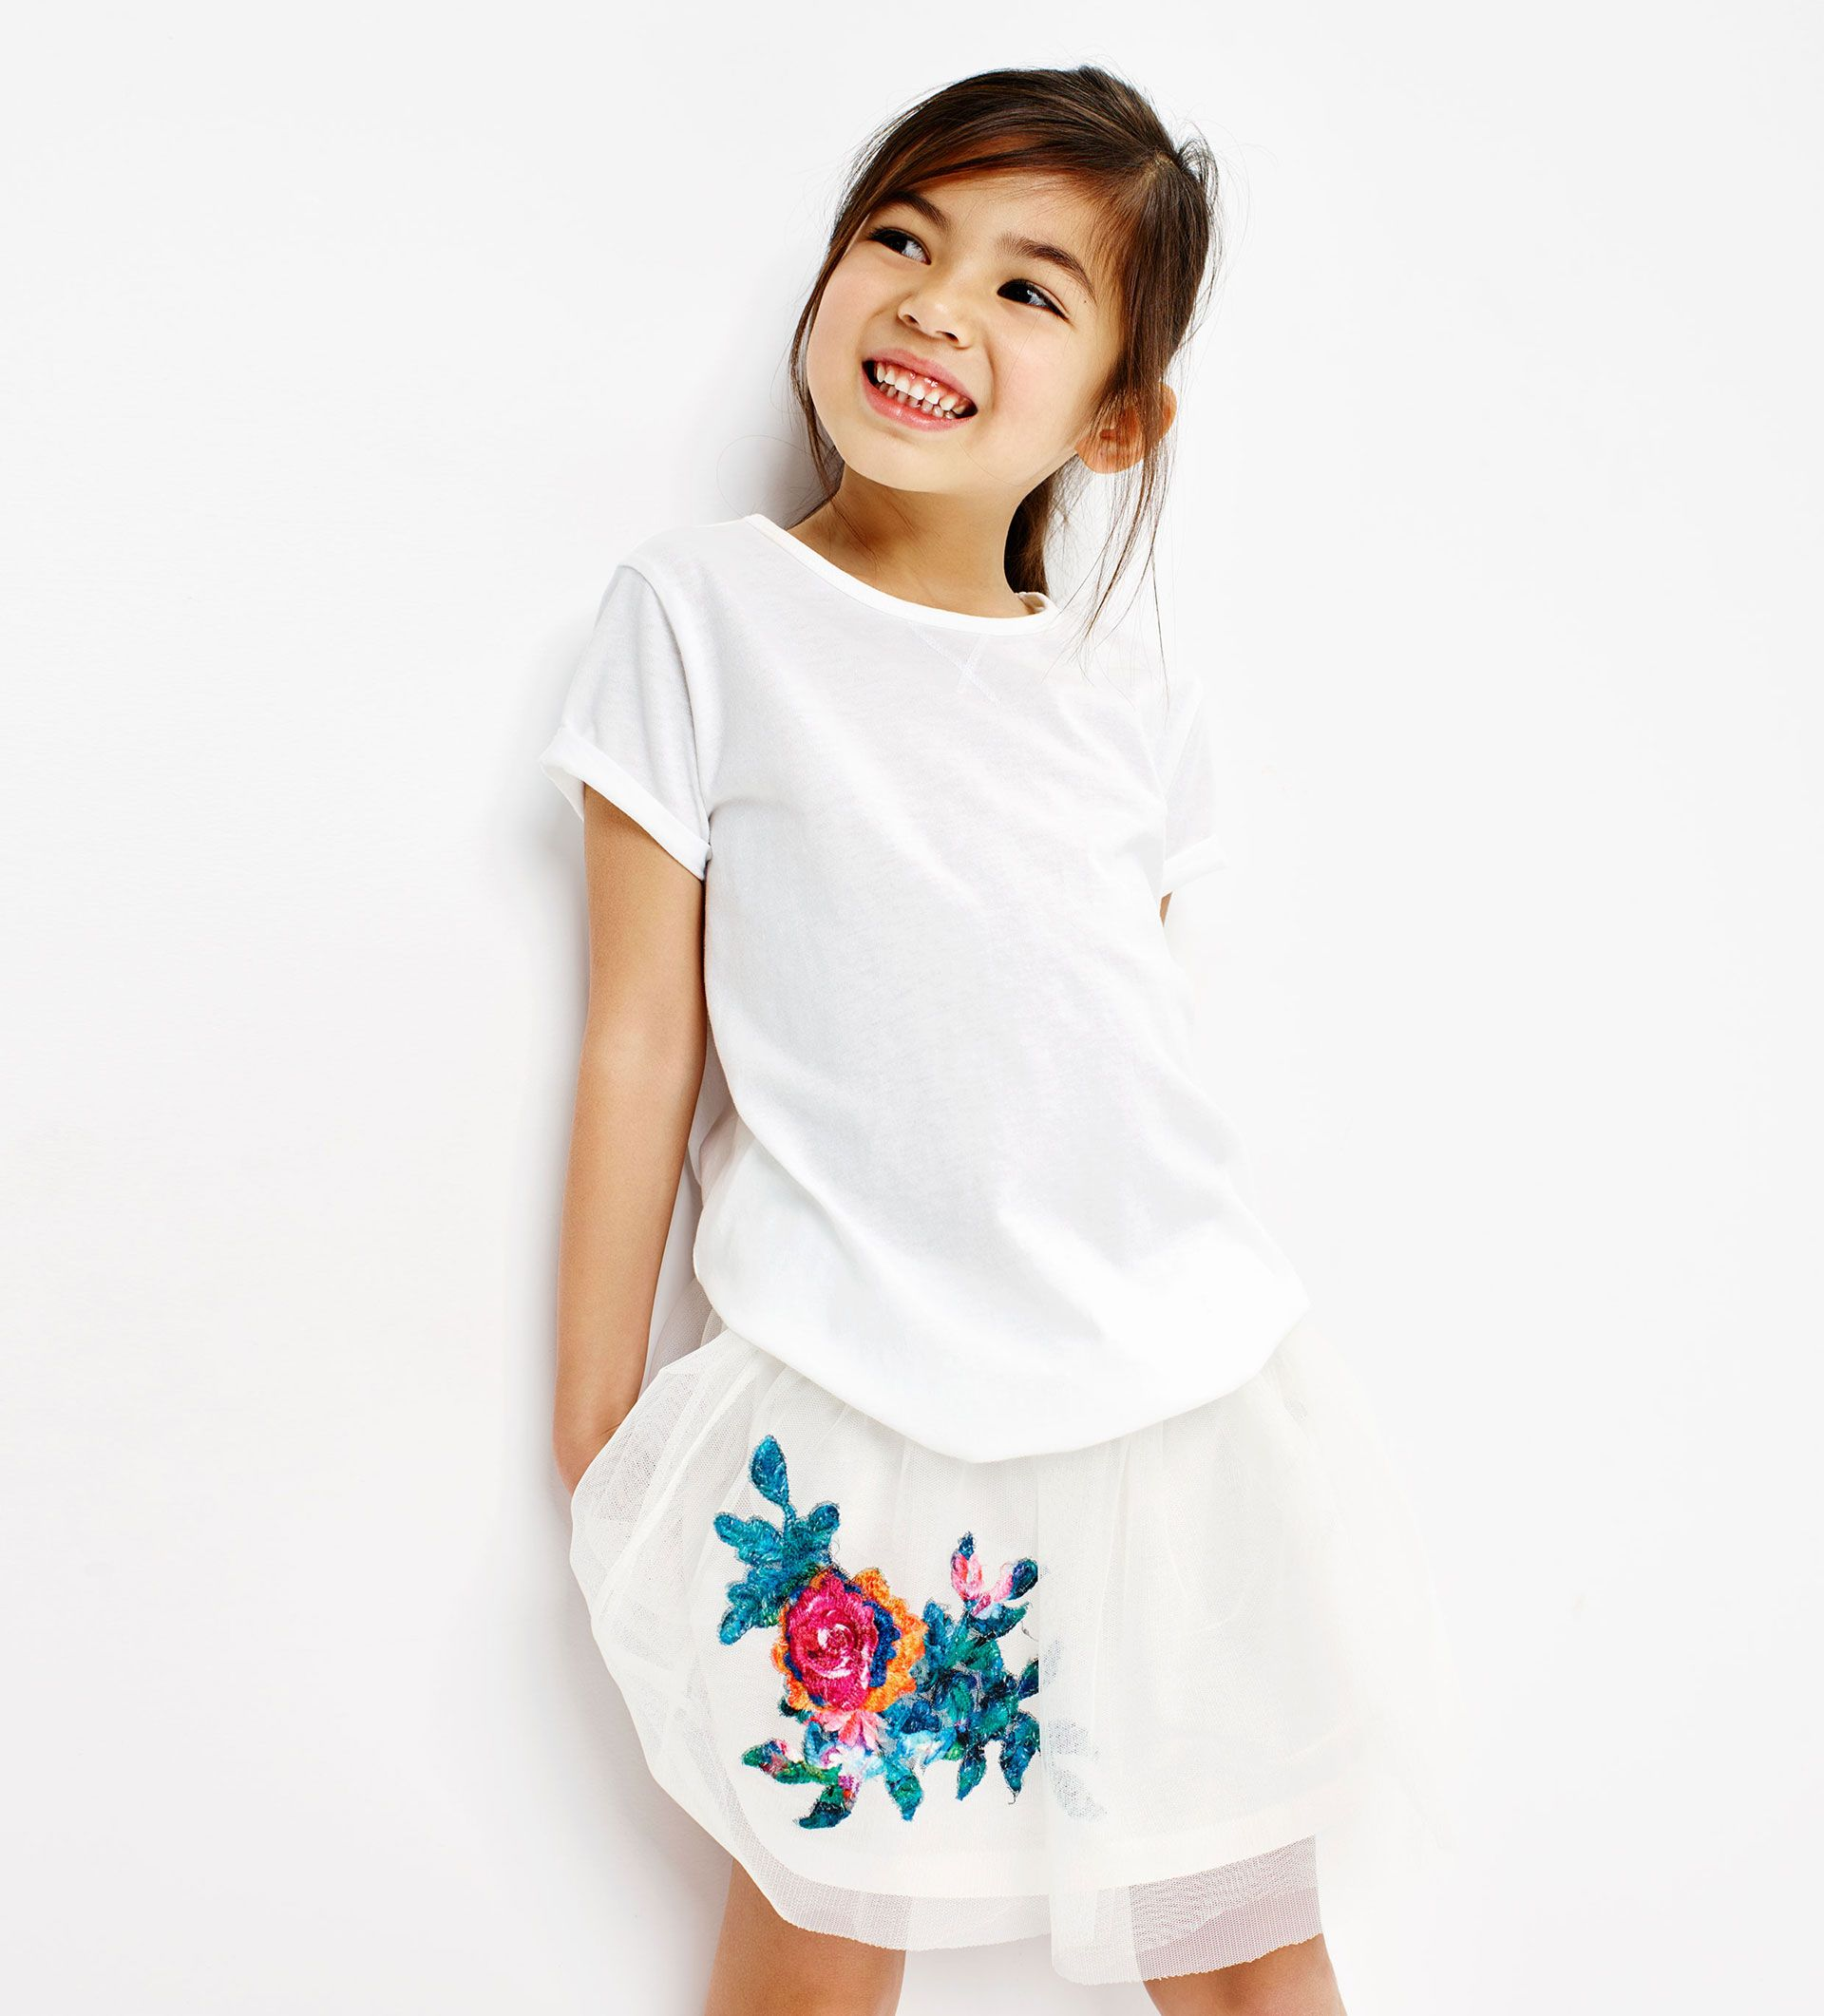 Floral Appliqué Tulle Skirt Kids Fashion Kids Outfits